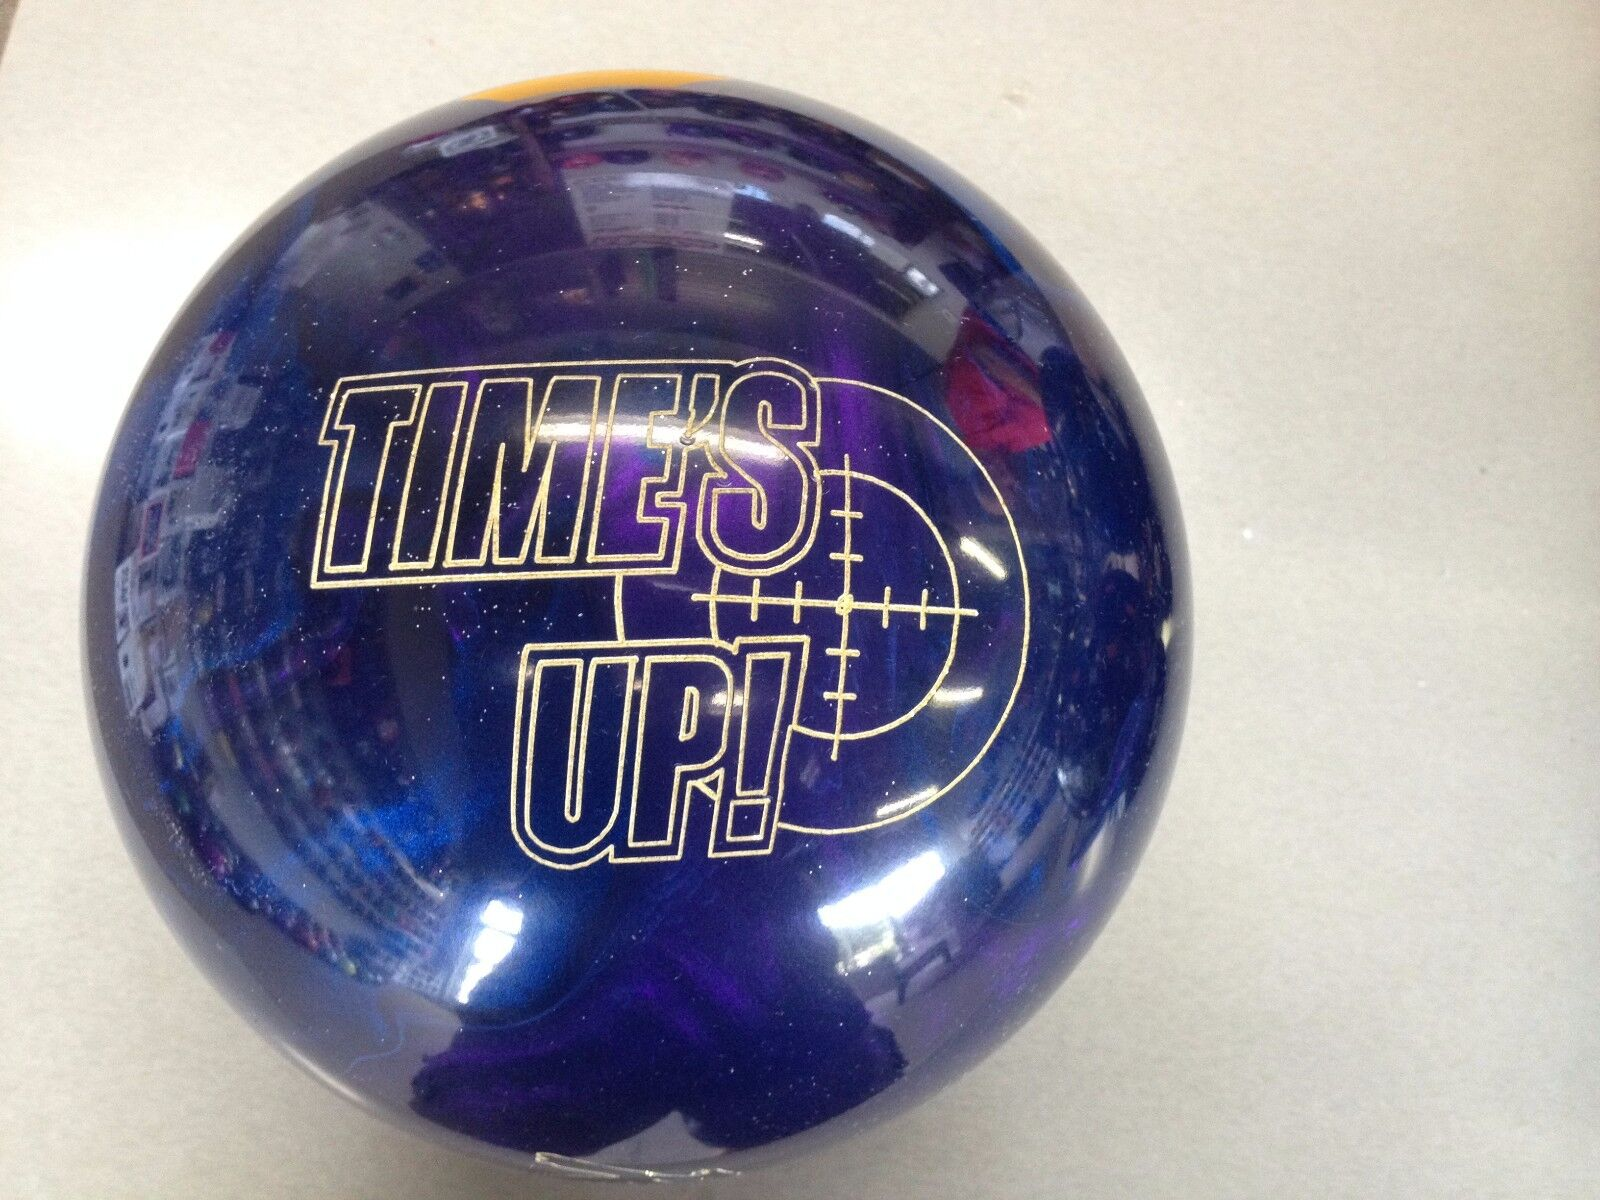 RADICAL TIMES UP   bowling ball  16 LB.  BRAND NEW IN BOX     1st quality ball